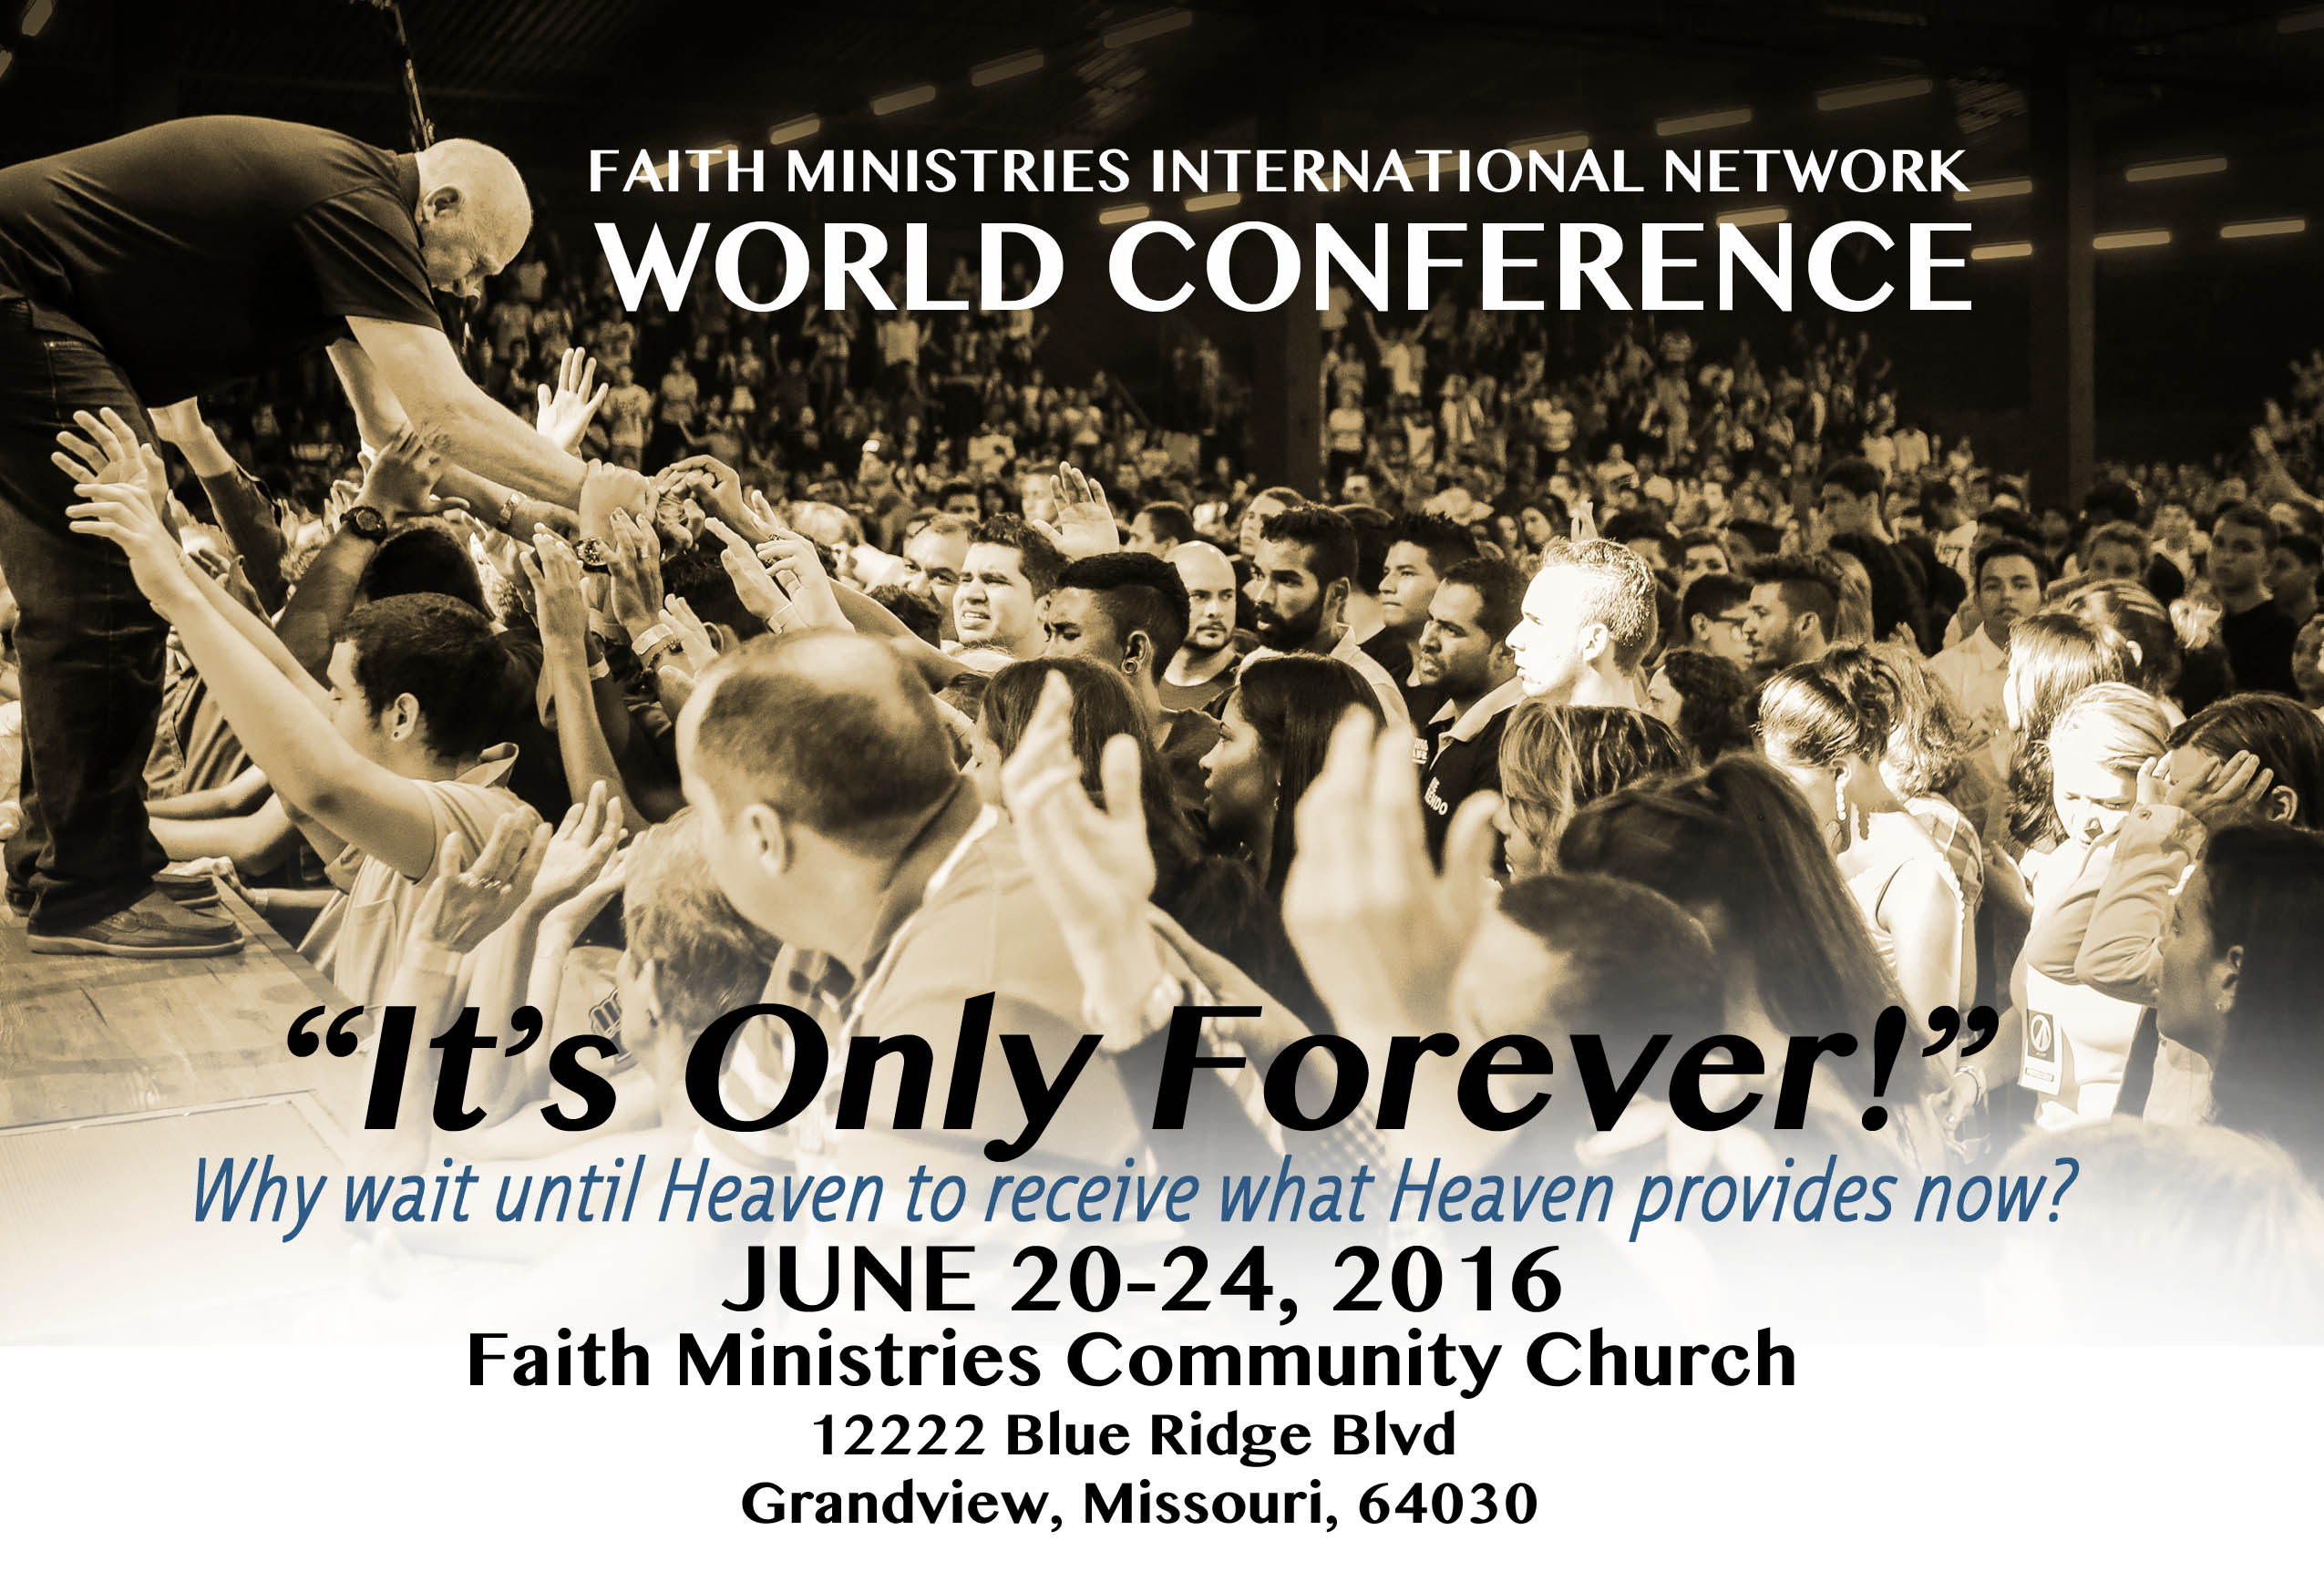 2016 World Conference - It's Only Forever